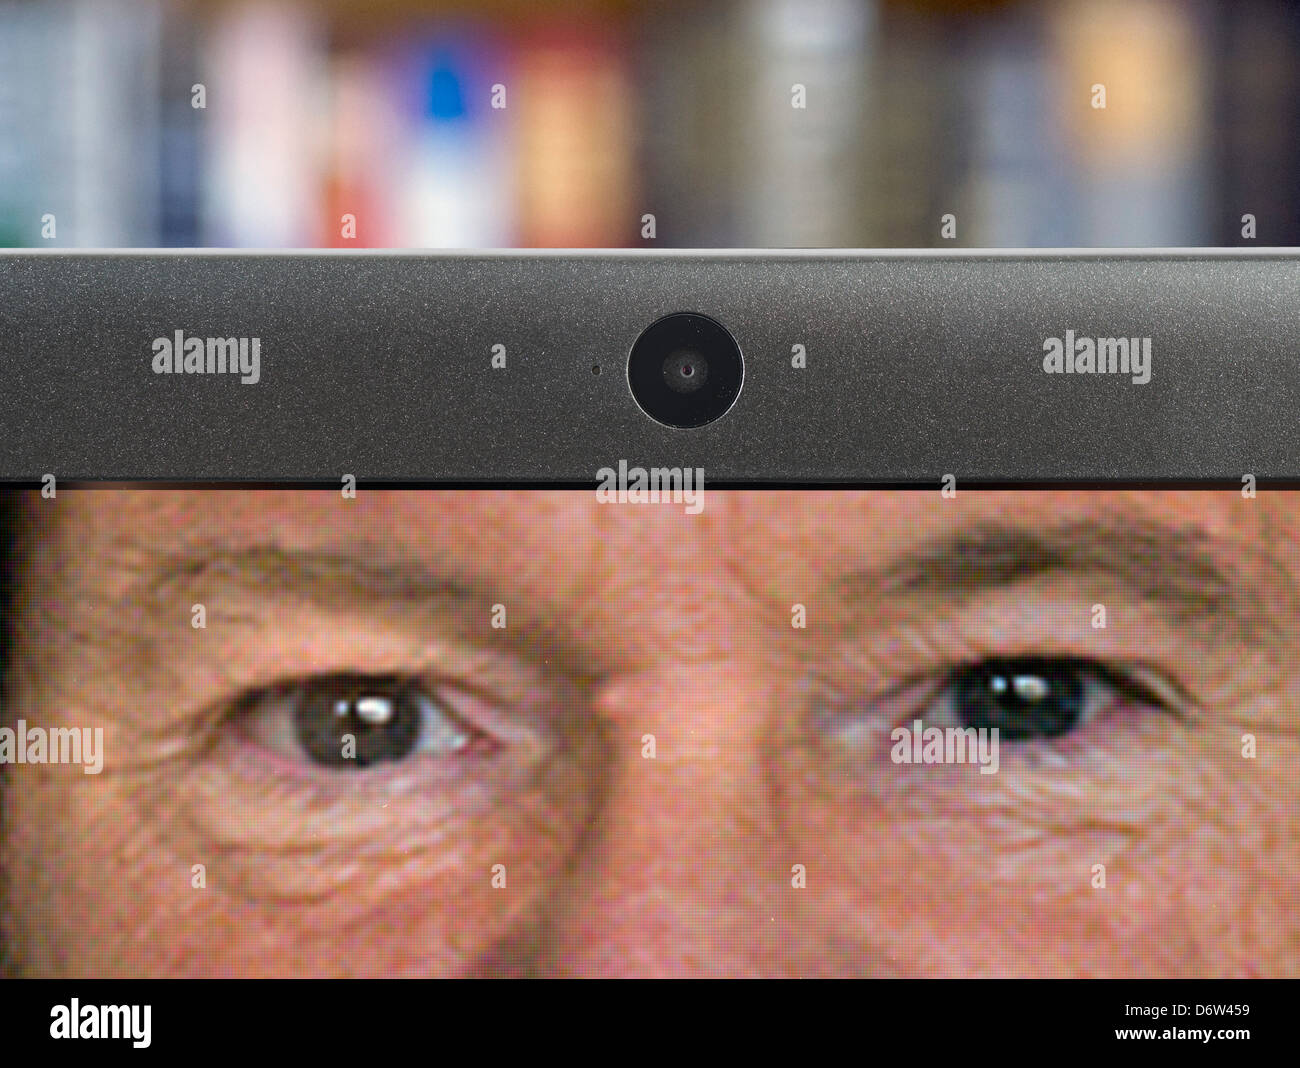 Using the webcam on a laptop computer - Stock Image